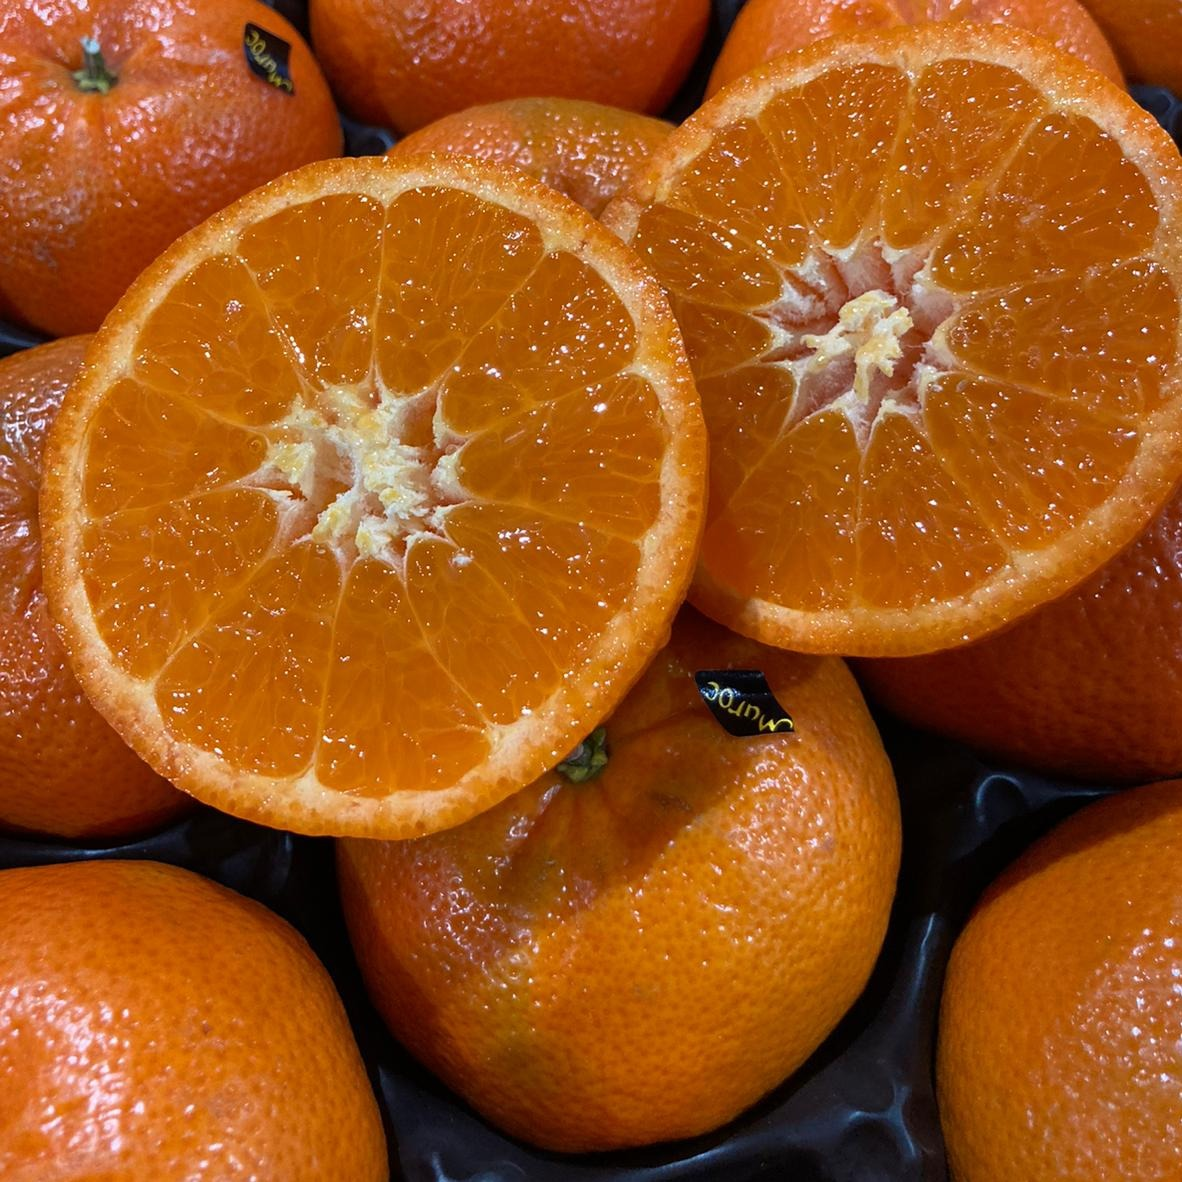 Satsuma each - Langthorpe Farm Shop